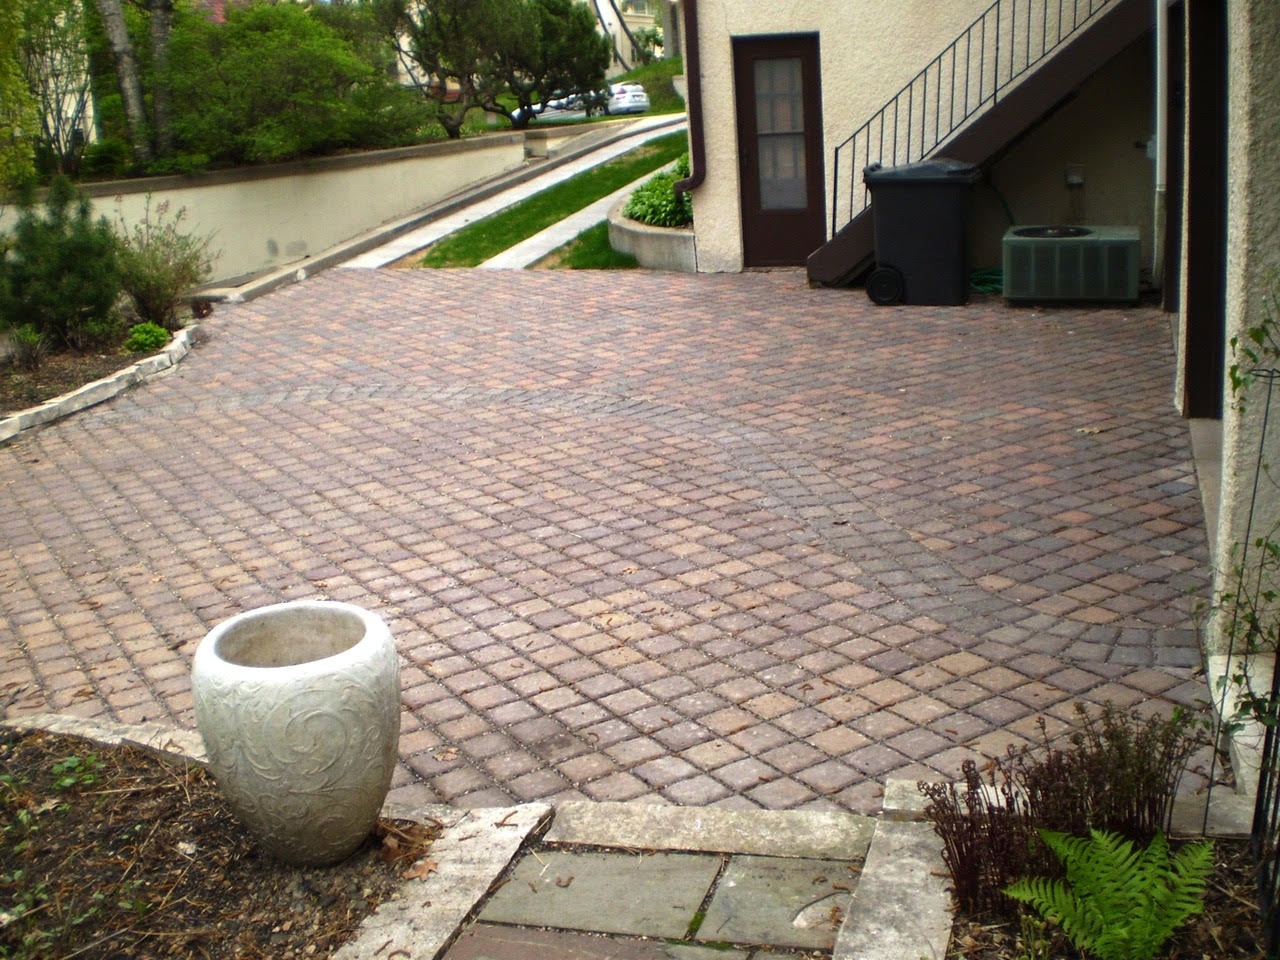 A driveway with a permeable paver pad. Concrete runners allow cars and SUV's alike to maneuver properly.